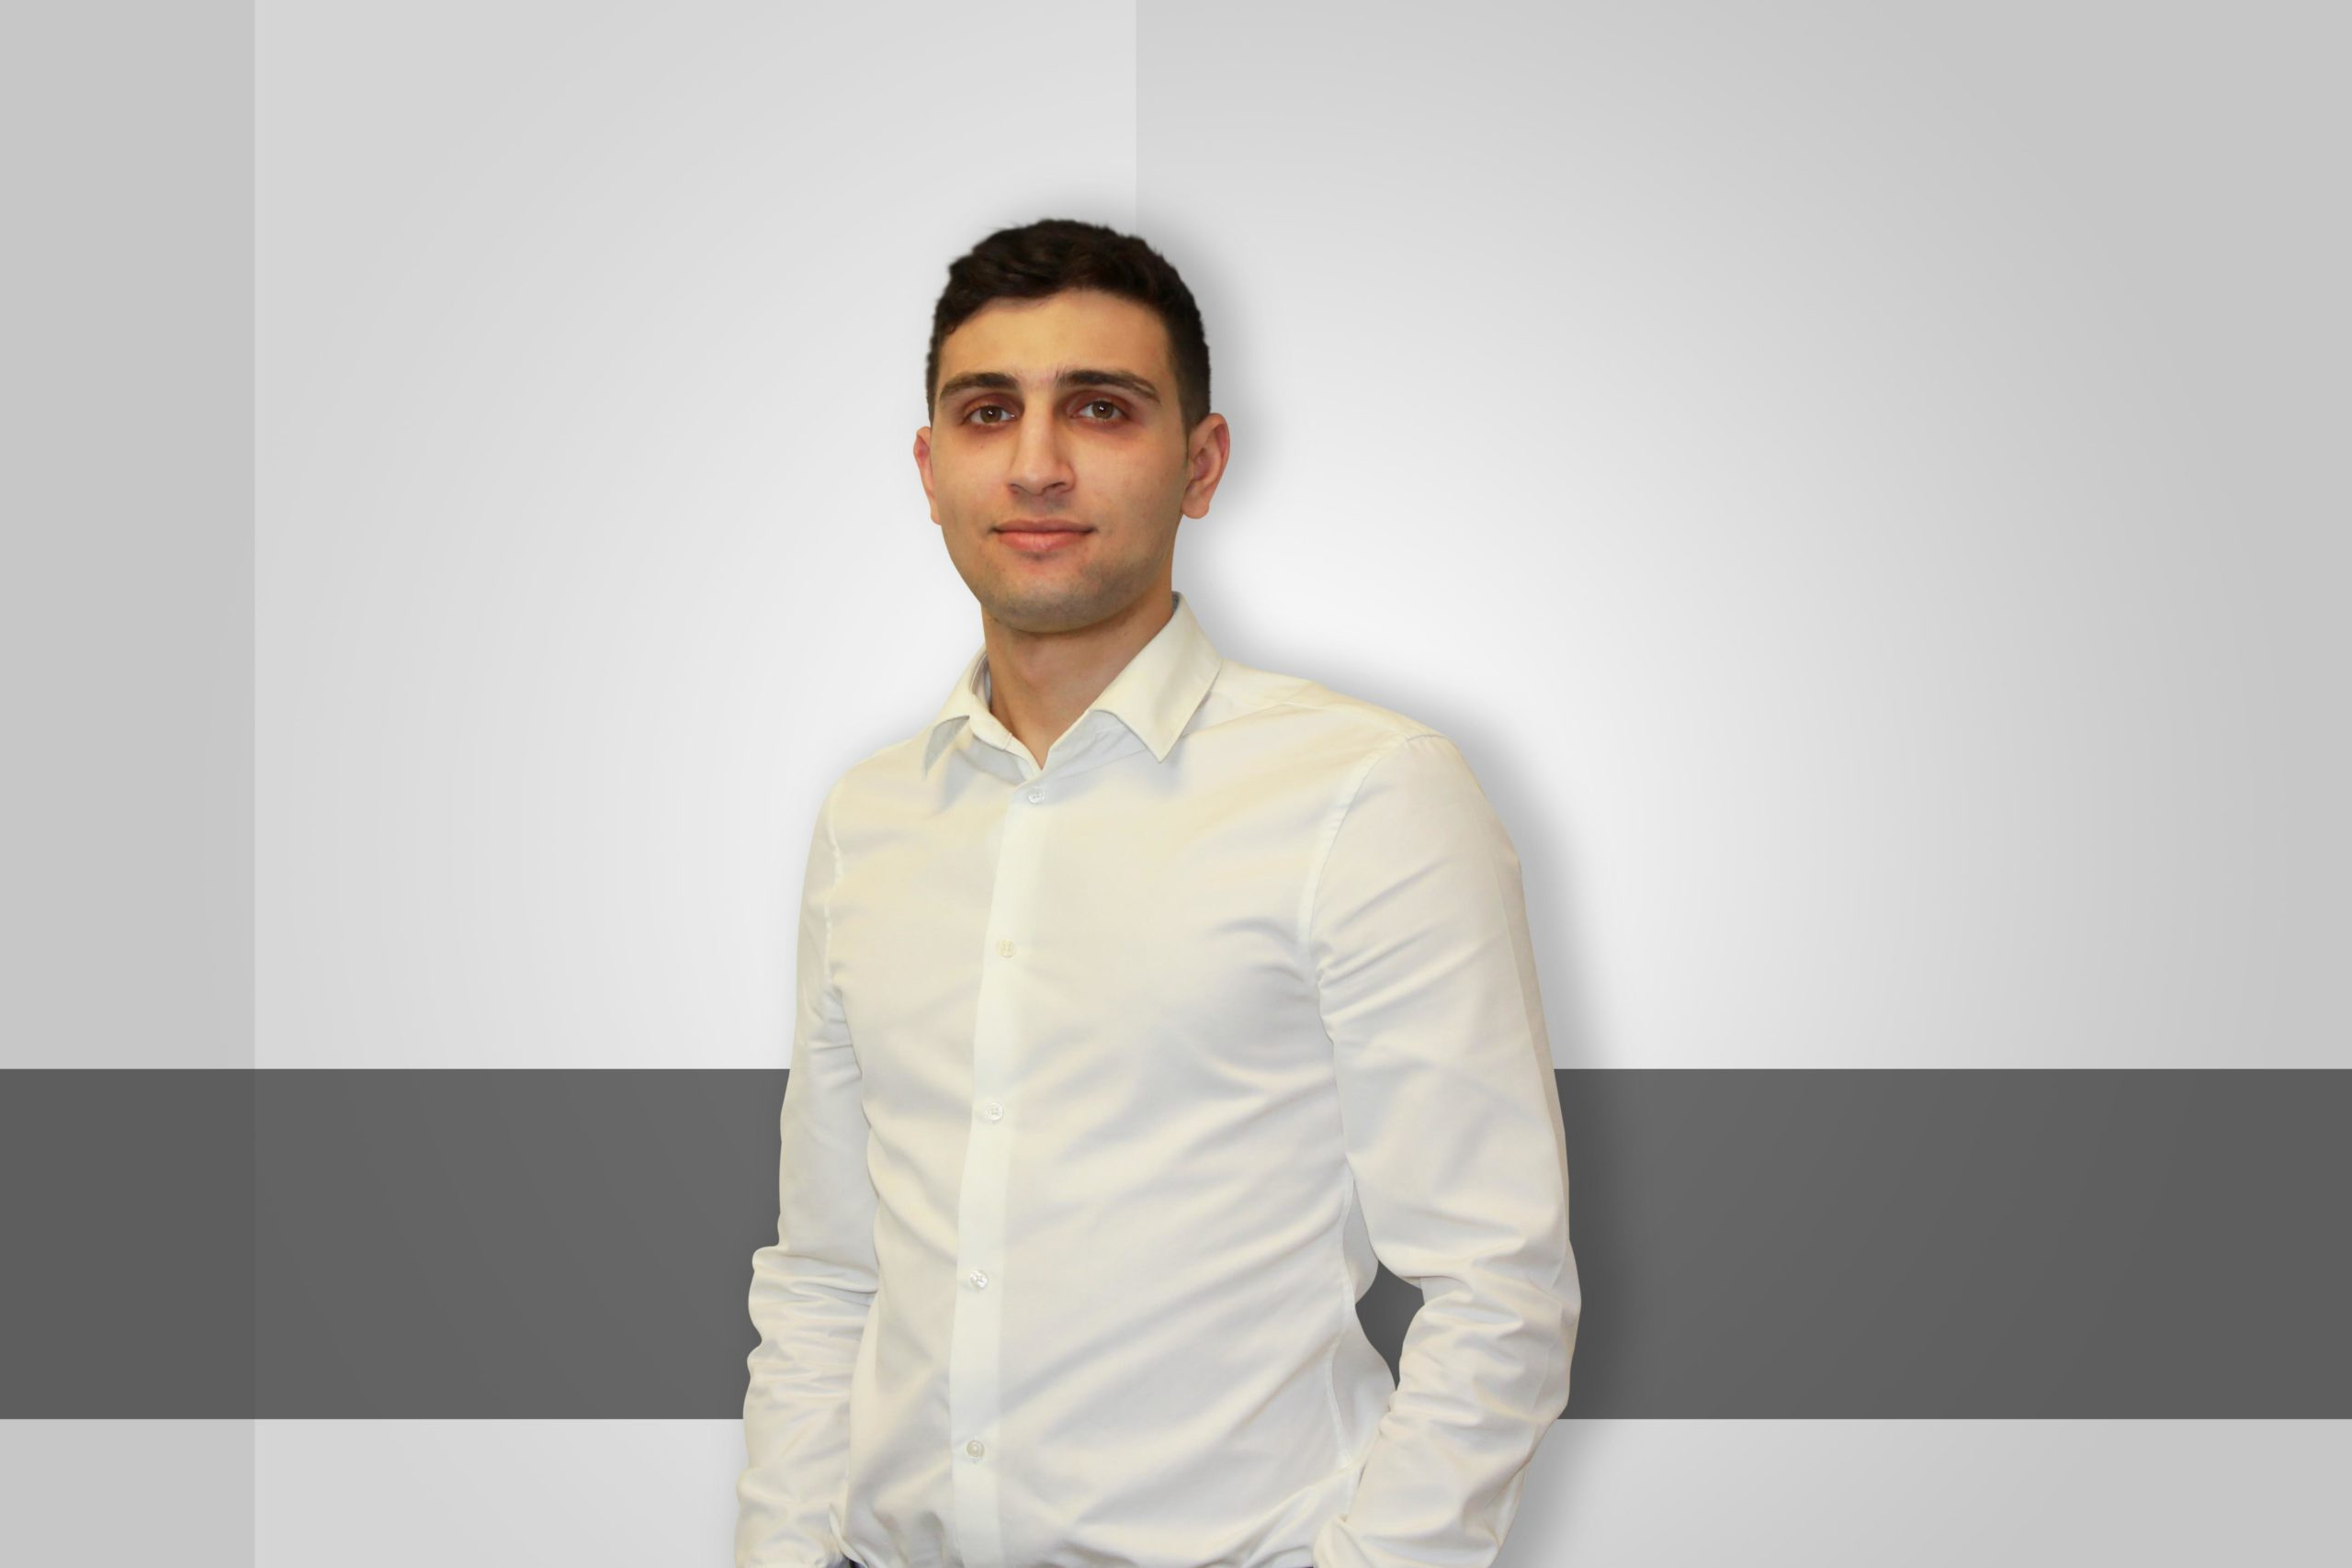 Amlogy CEO and Founder ARkadi Jeghiazaryan